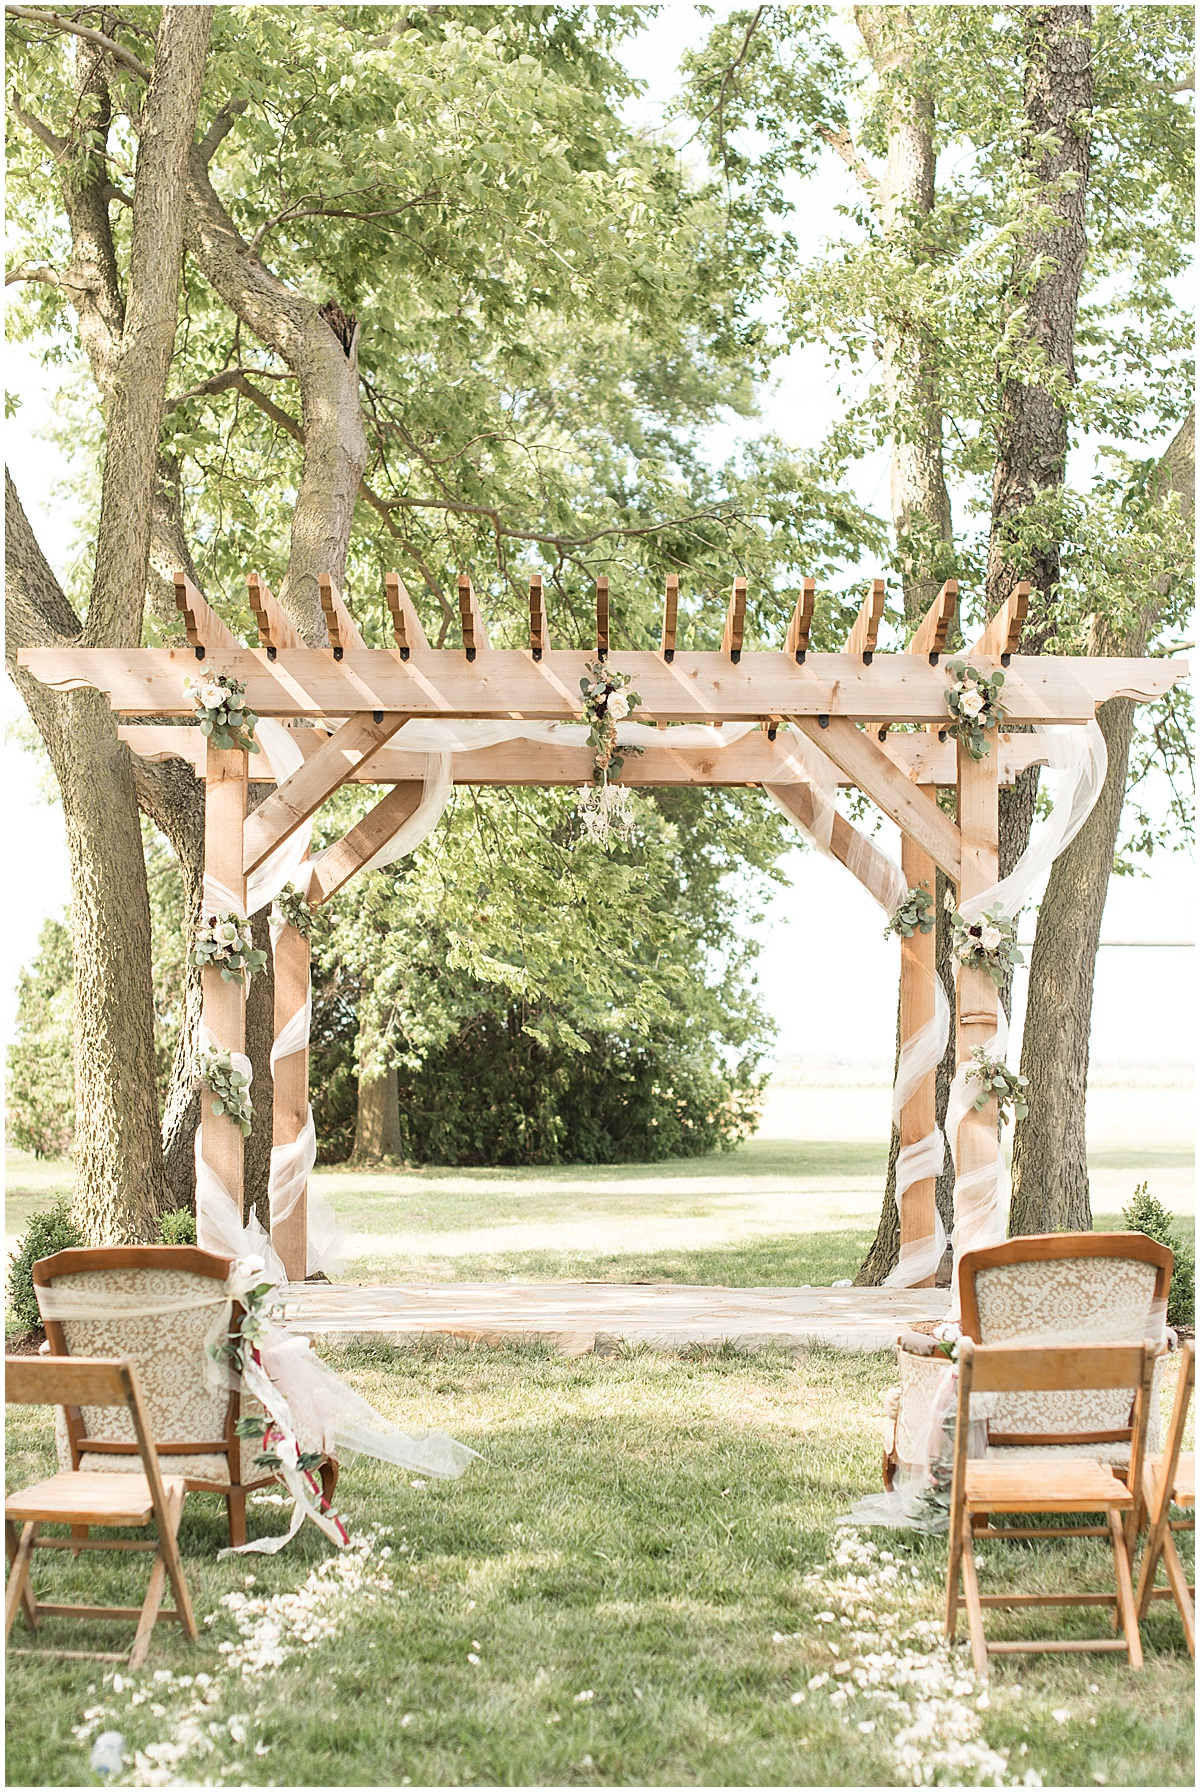 Summer Wedding at Vintage Oaks Banquet Barn in Lafayette, Indiana